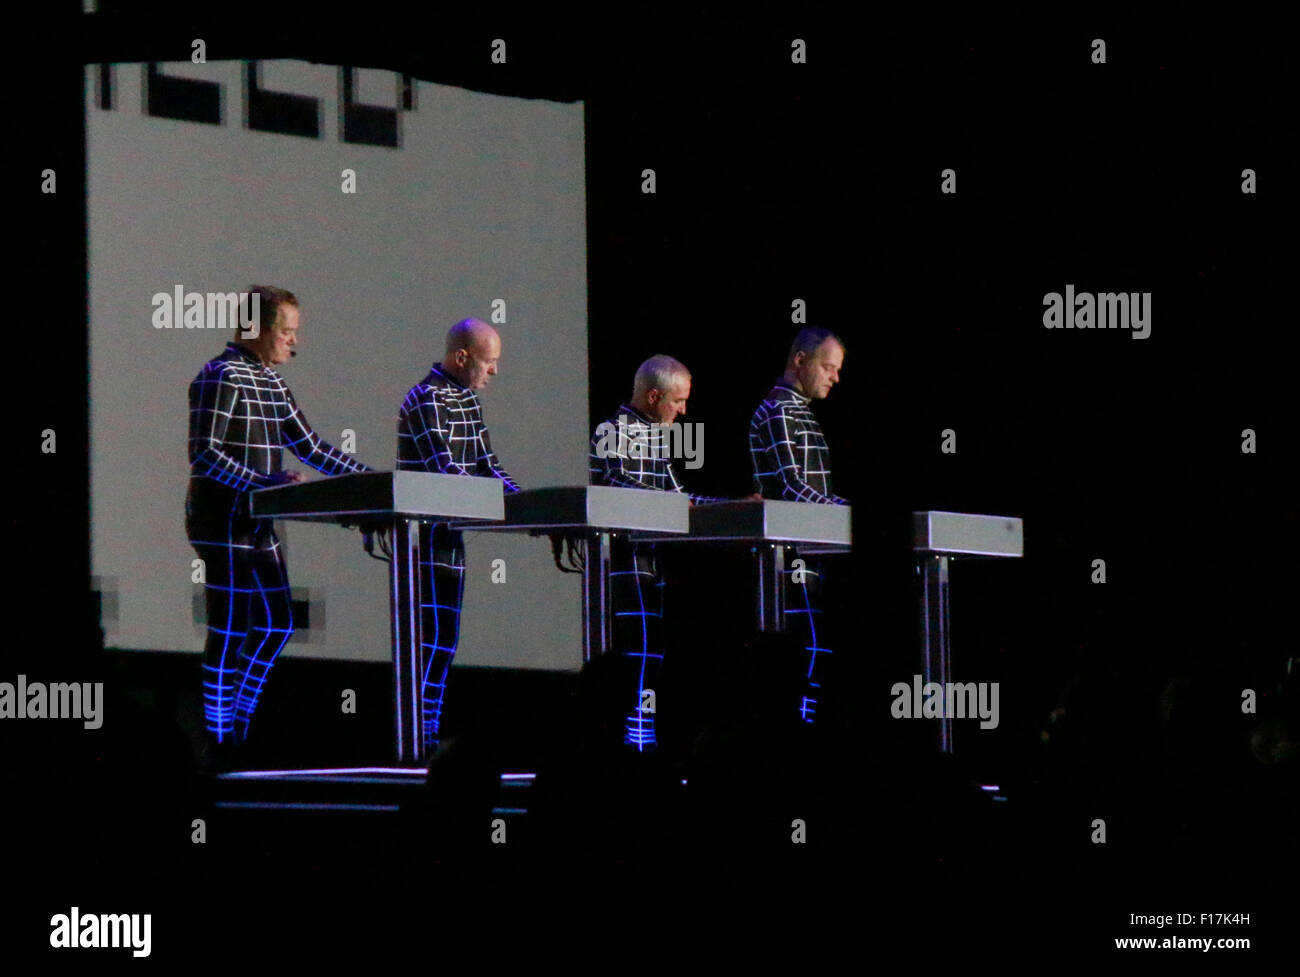 "Konzert der Band ""Kraftwerk"", Neue Nationalgalerie, 8. Januar 2015, Berlin. Stock Photo"